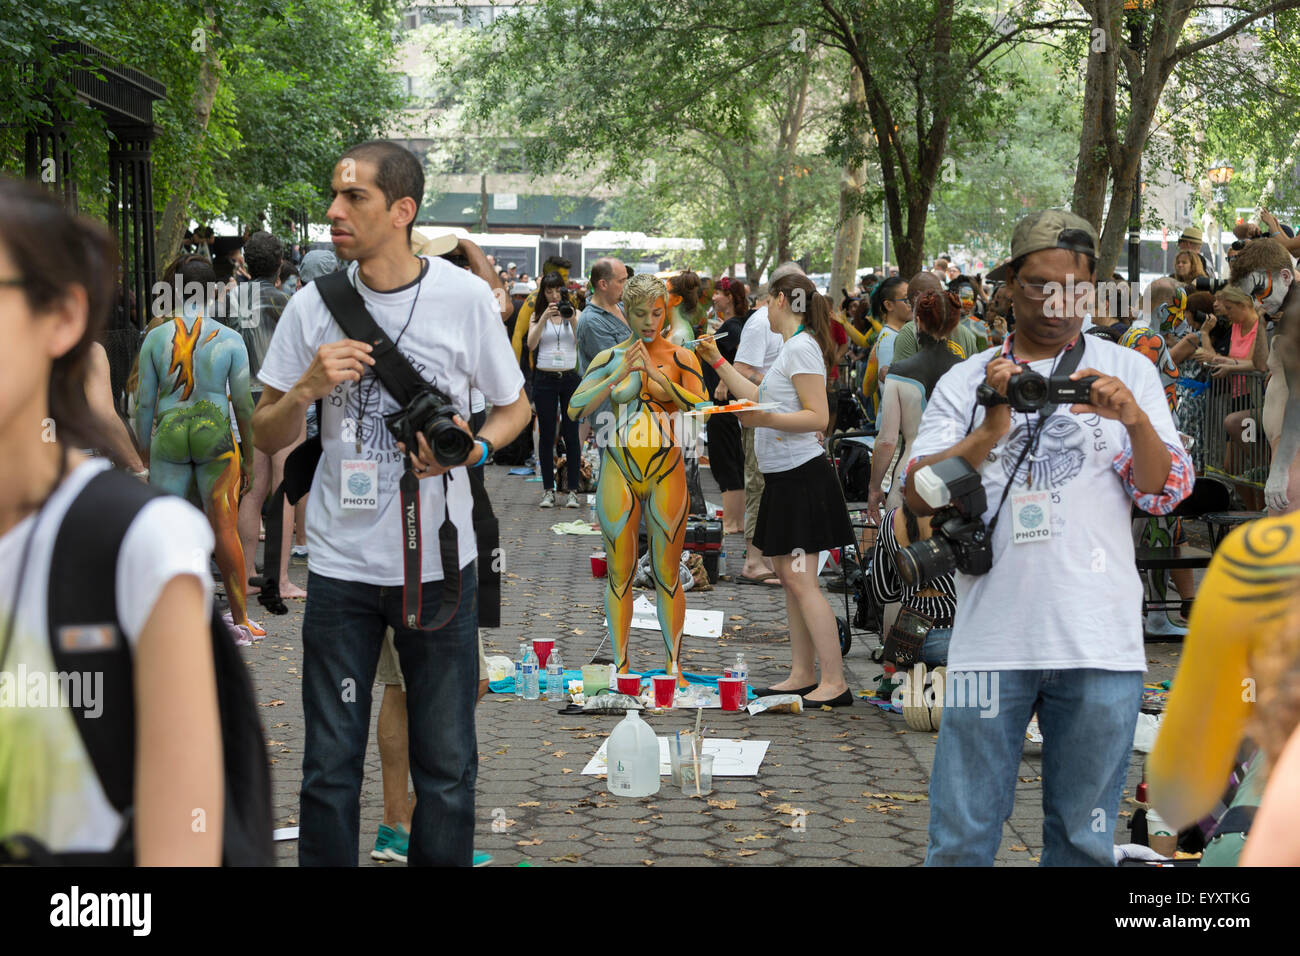 New York, NY USA - July 18, 2015: Models and artists work ...